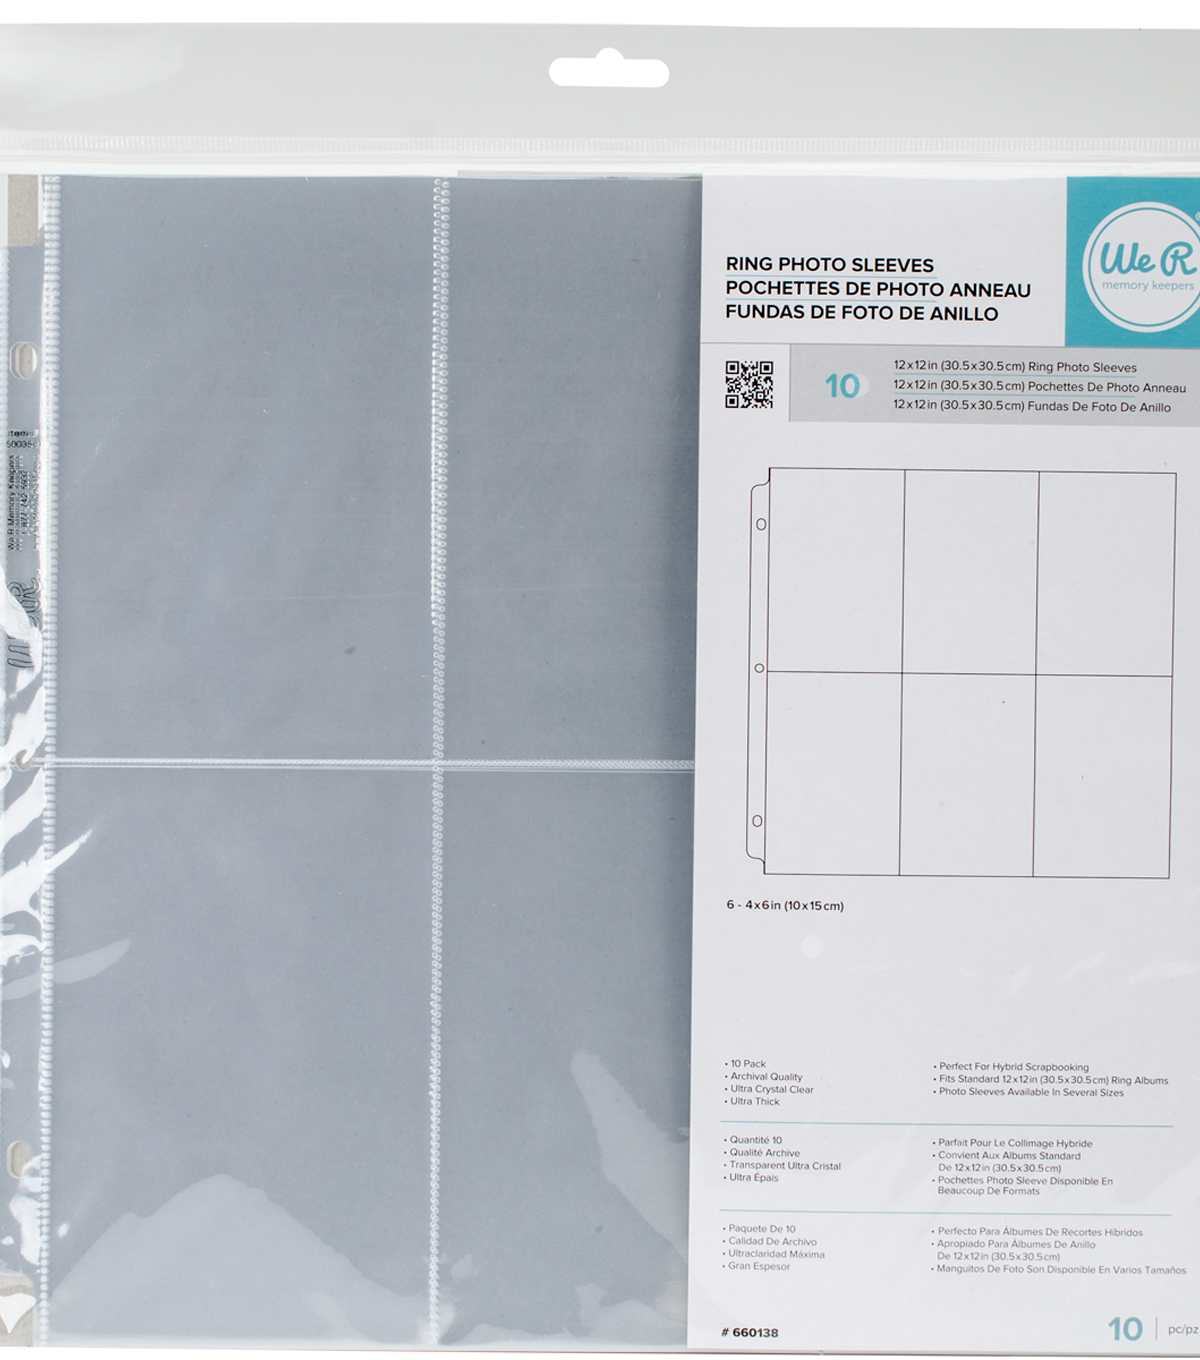 We R Ring Photo Sleeves 12x12 10pkg 6 6x4 Pockets Joann